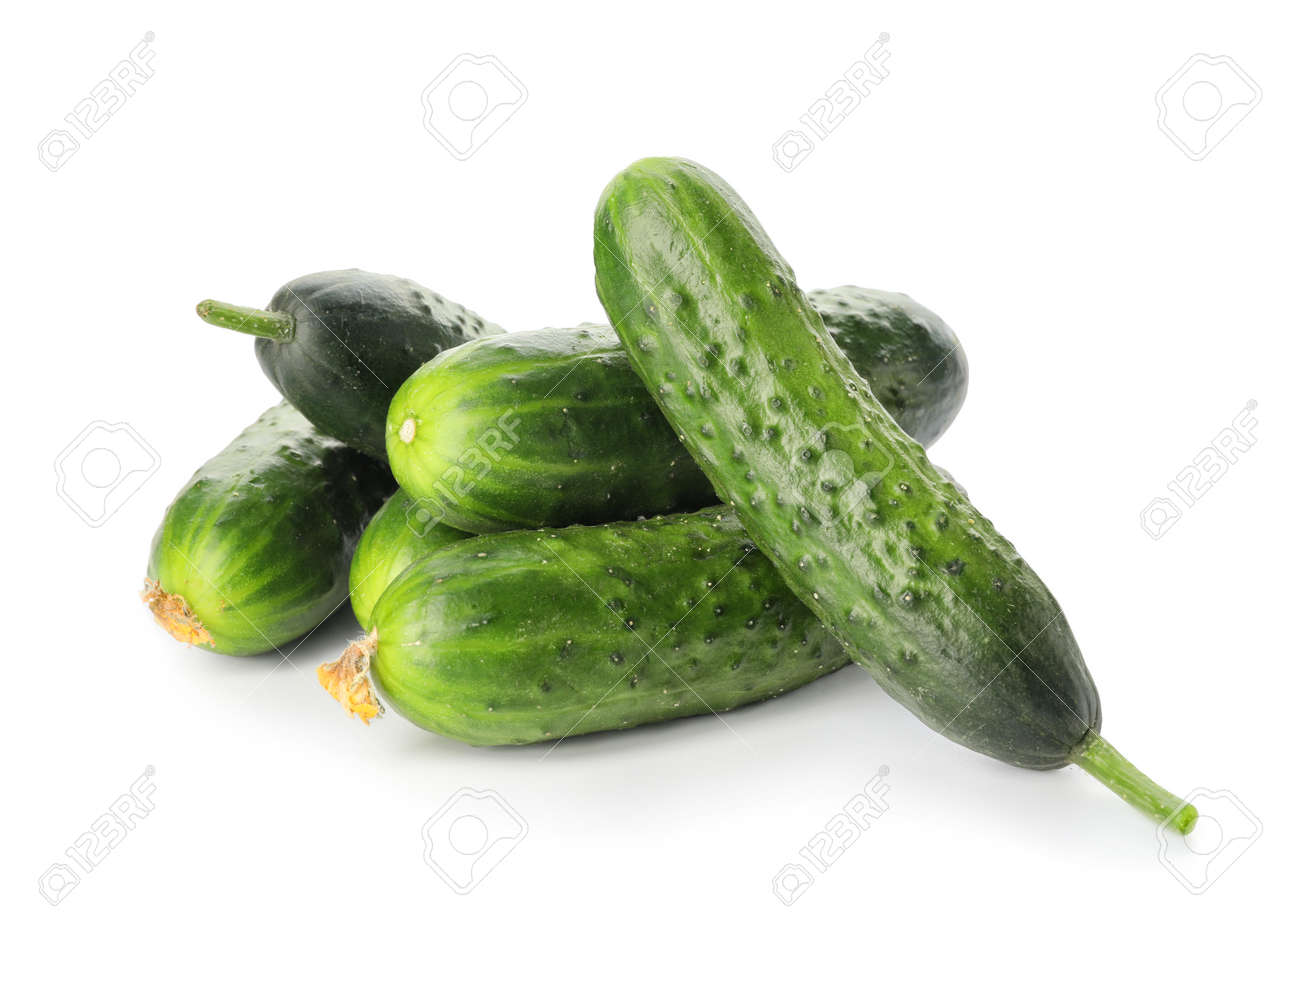 Green cucumbers on white background - 166437561